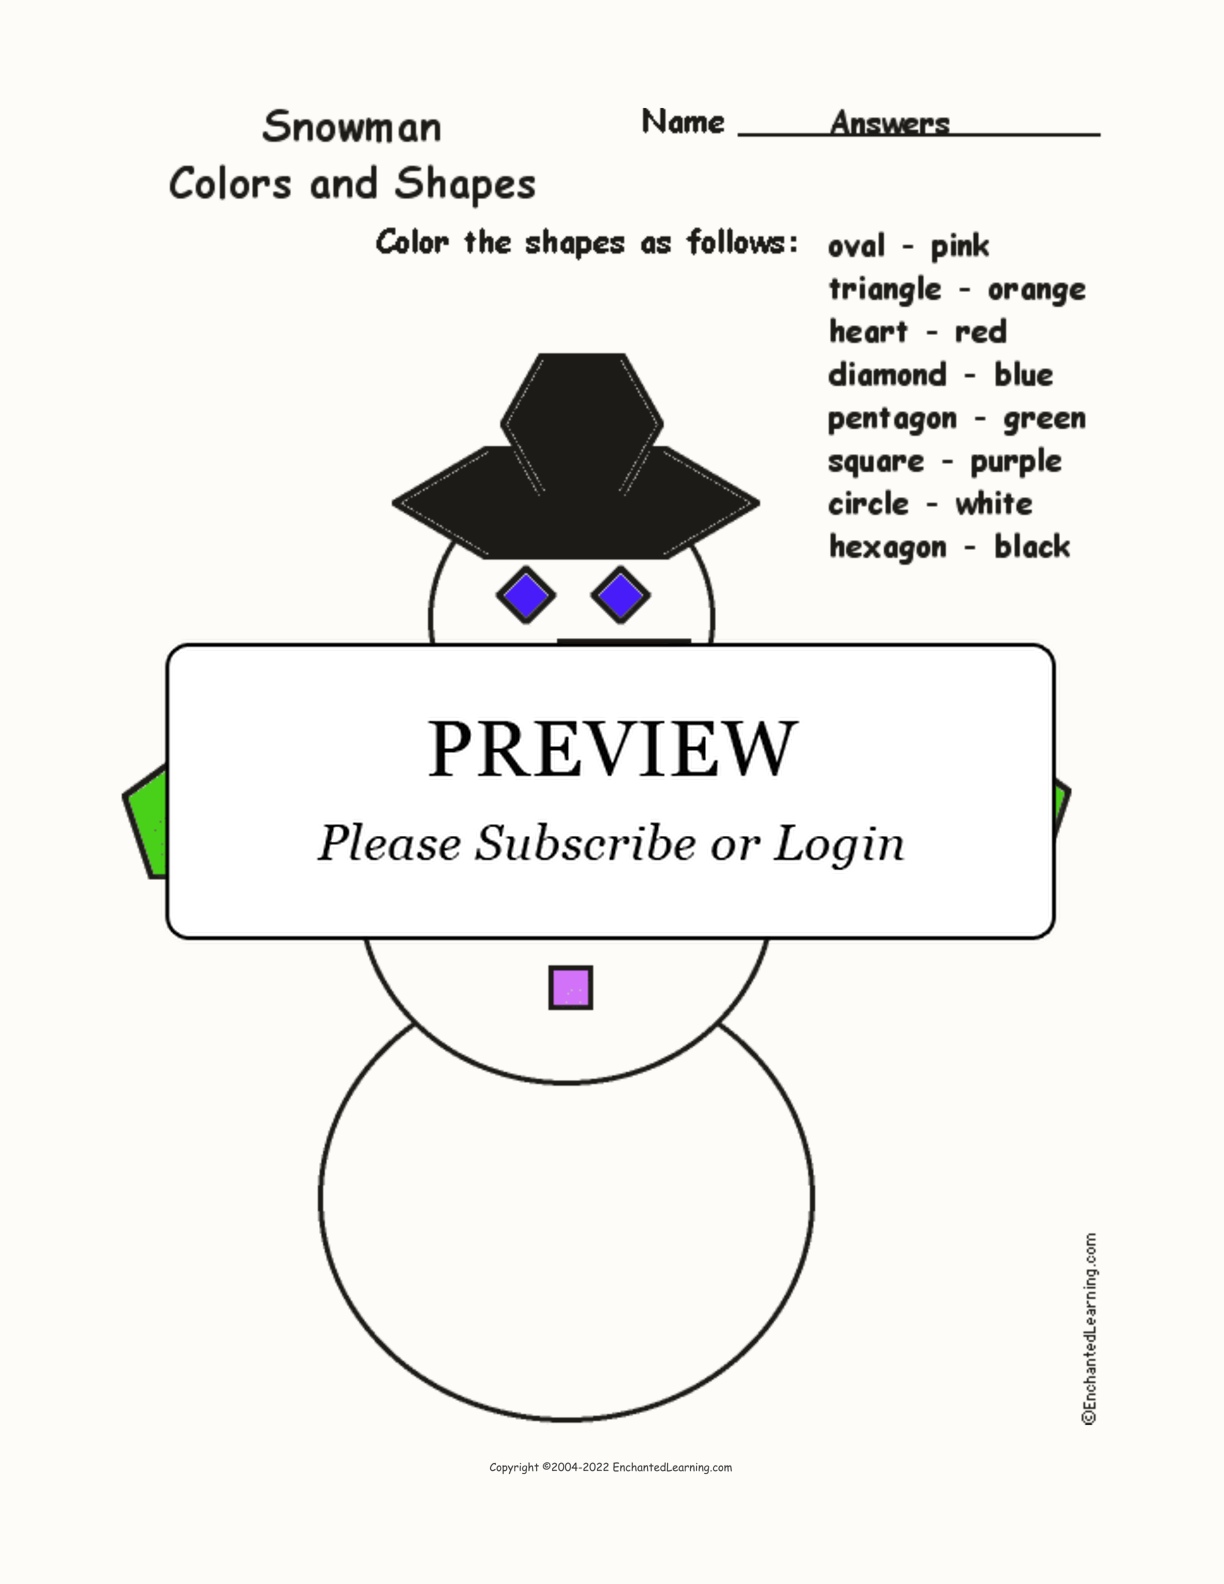 Snowman: Colors and Shapes interactive worksheet page 2